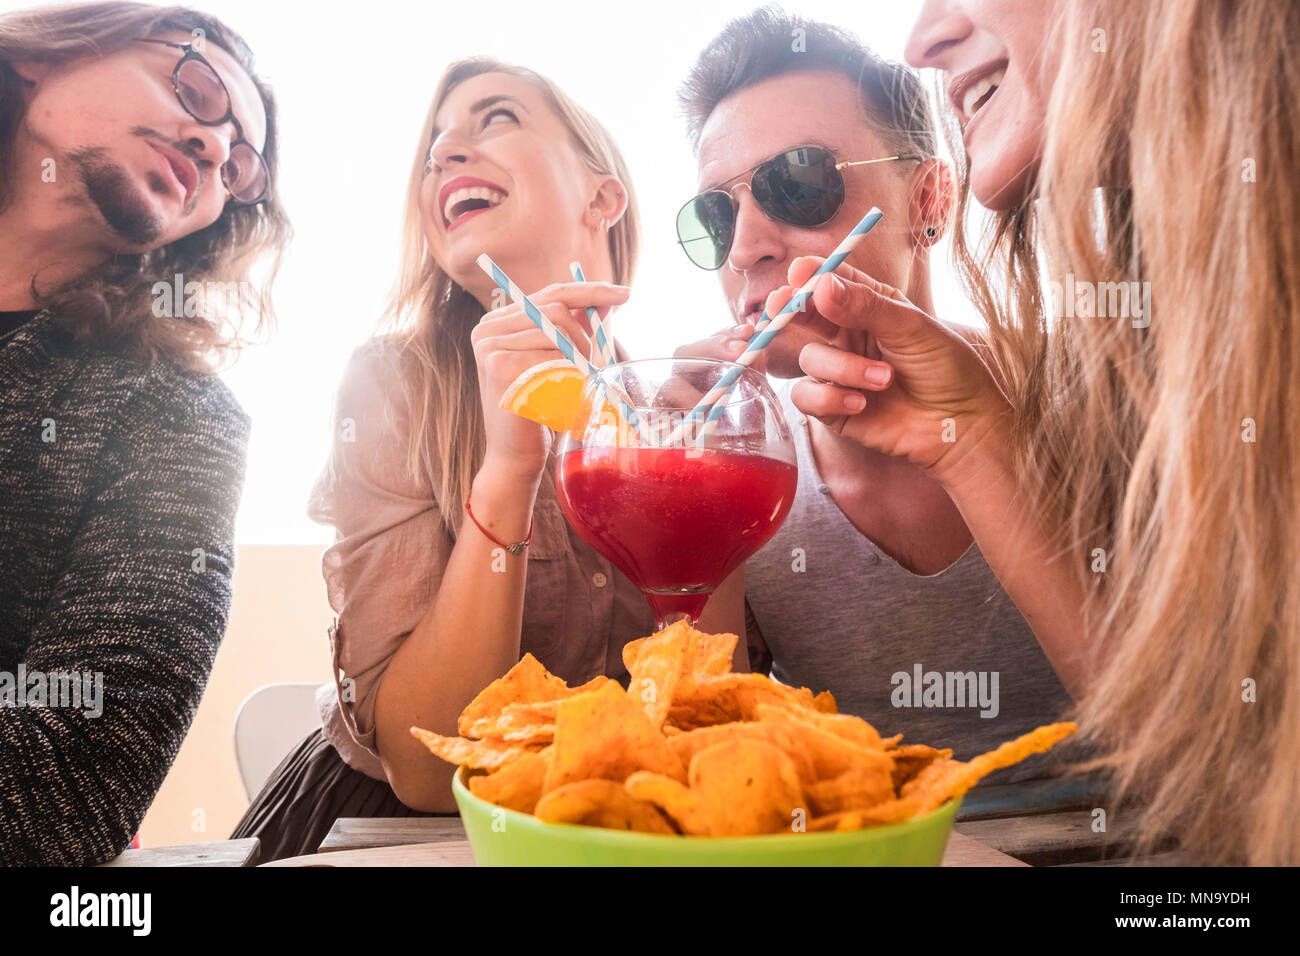 four men and women have fun together friendship drinking all with the same glass vase with red orange fruit. party time with clear background for youn - Stock Image